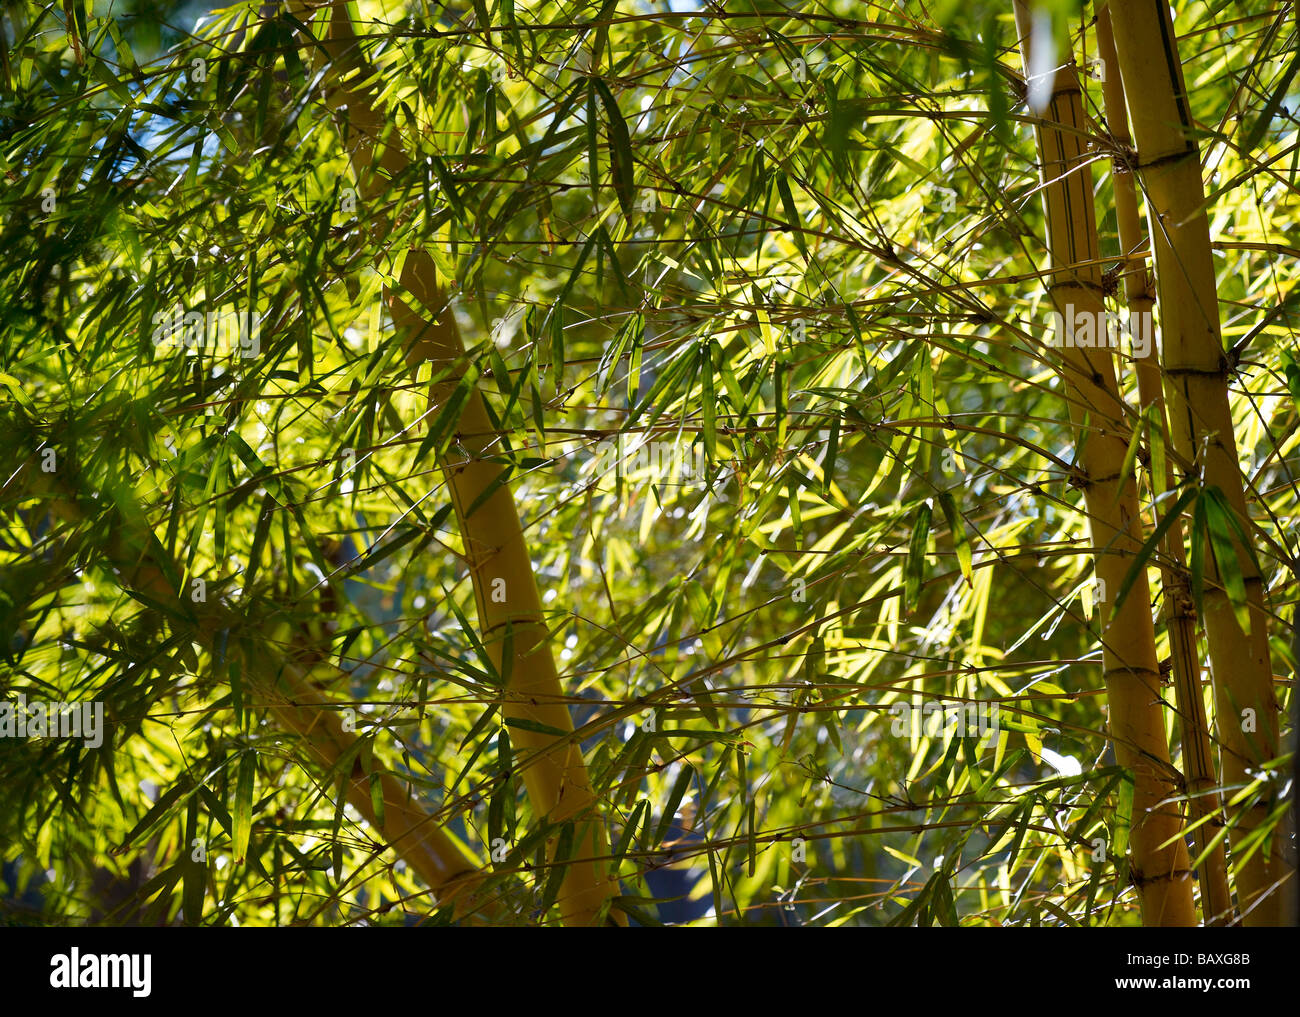 Grove of bamboo - Stock Image